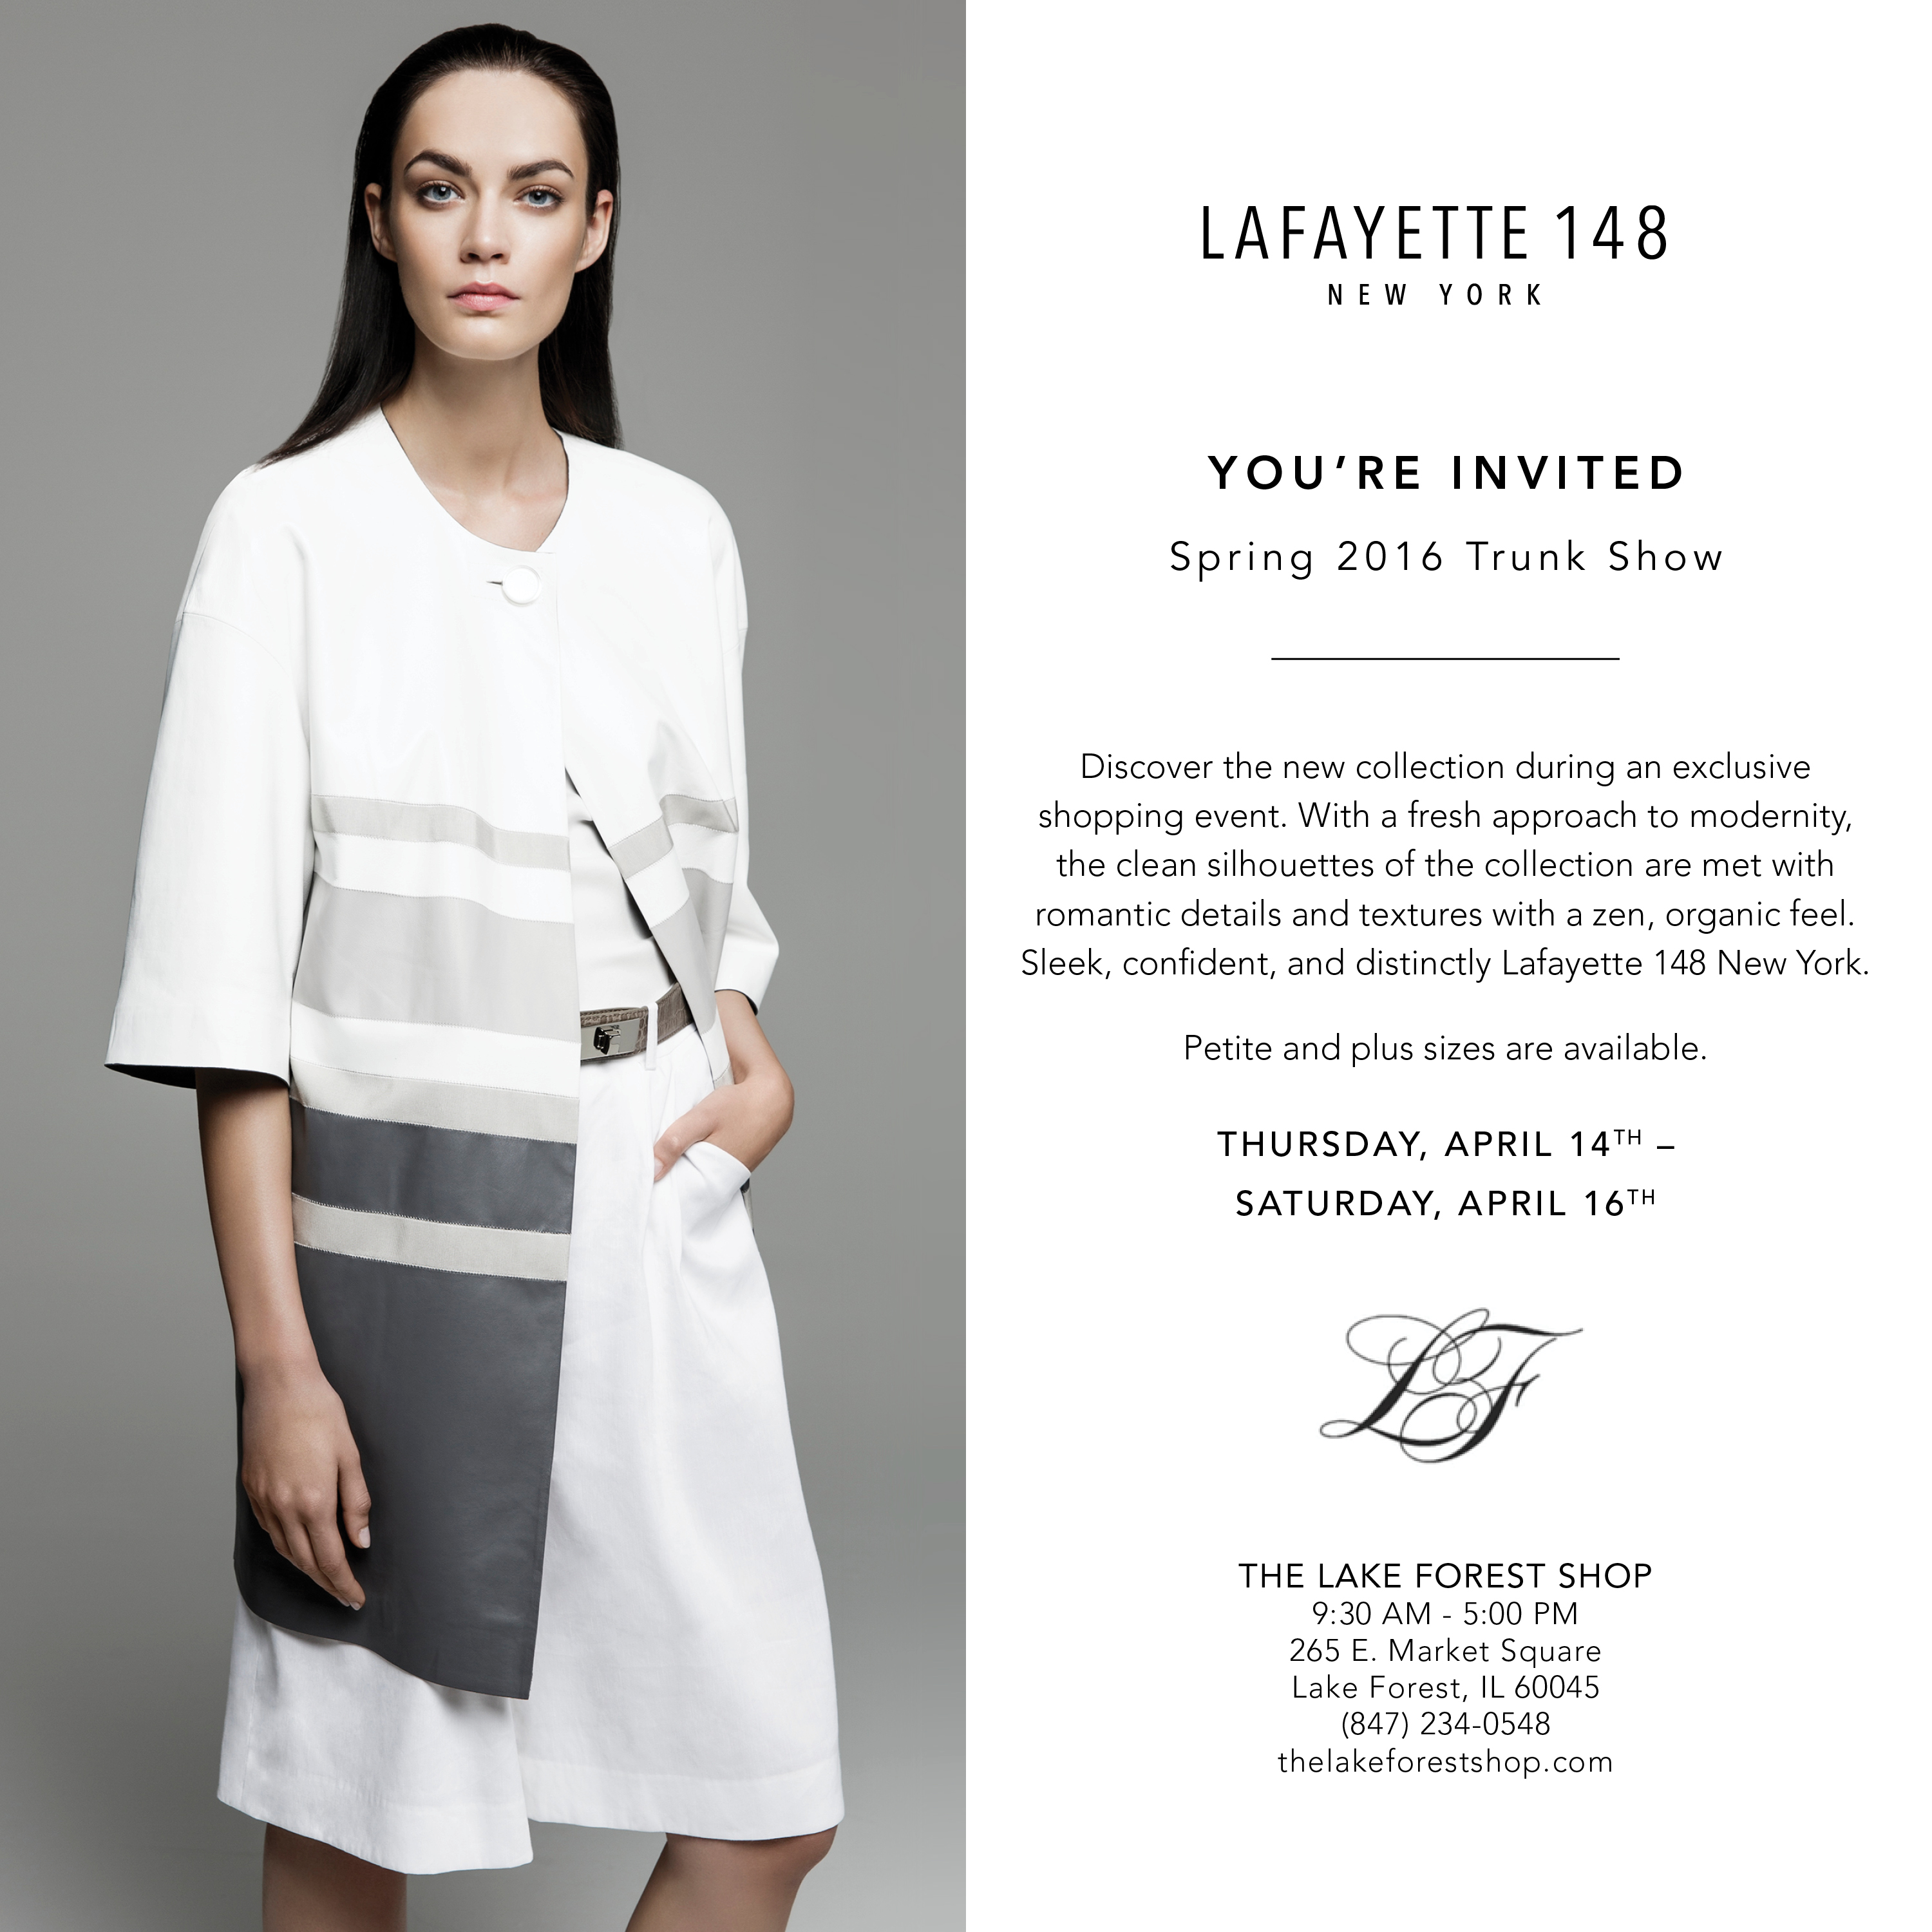 Lafayette 148 Insider's Couture Event